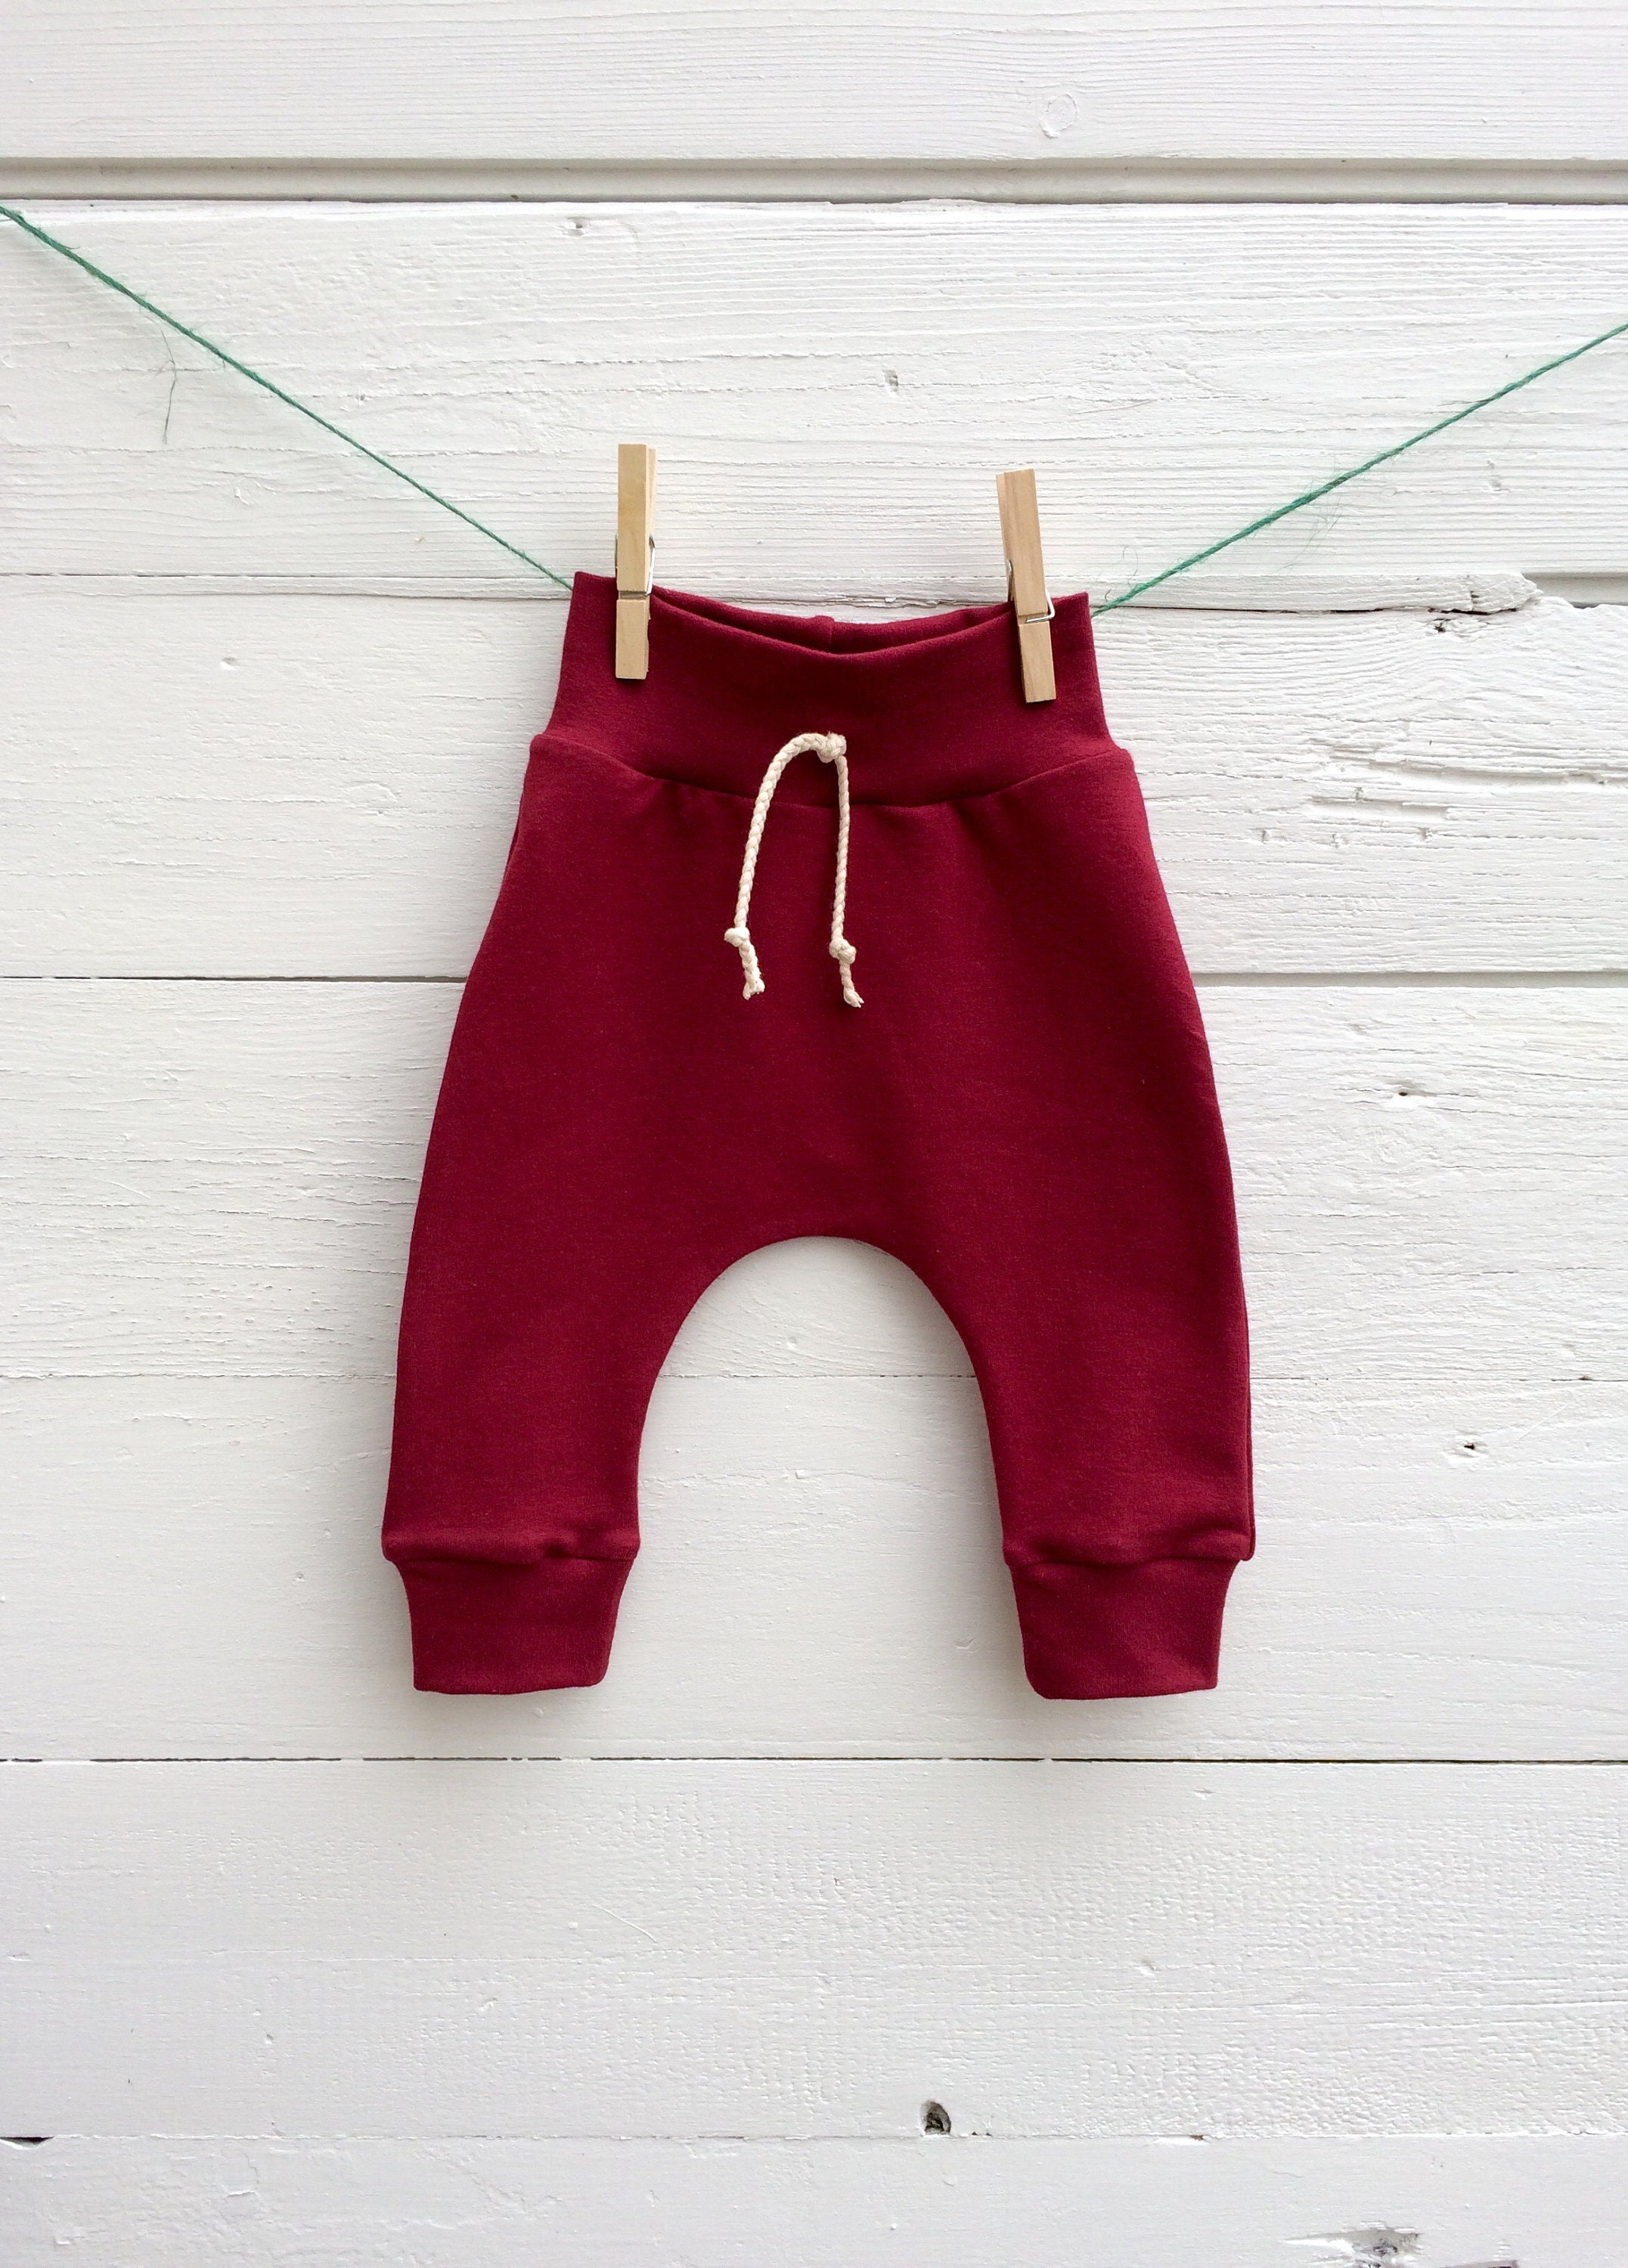 5b7adfcd4 Cranberry Red Baby Pants, Kids Harem Pants, Unisex Kids Clothes, Baby  Leggings, French Terry Baby Pants, Solid Color Pants, Christmas Kids